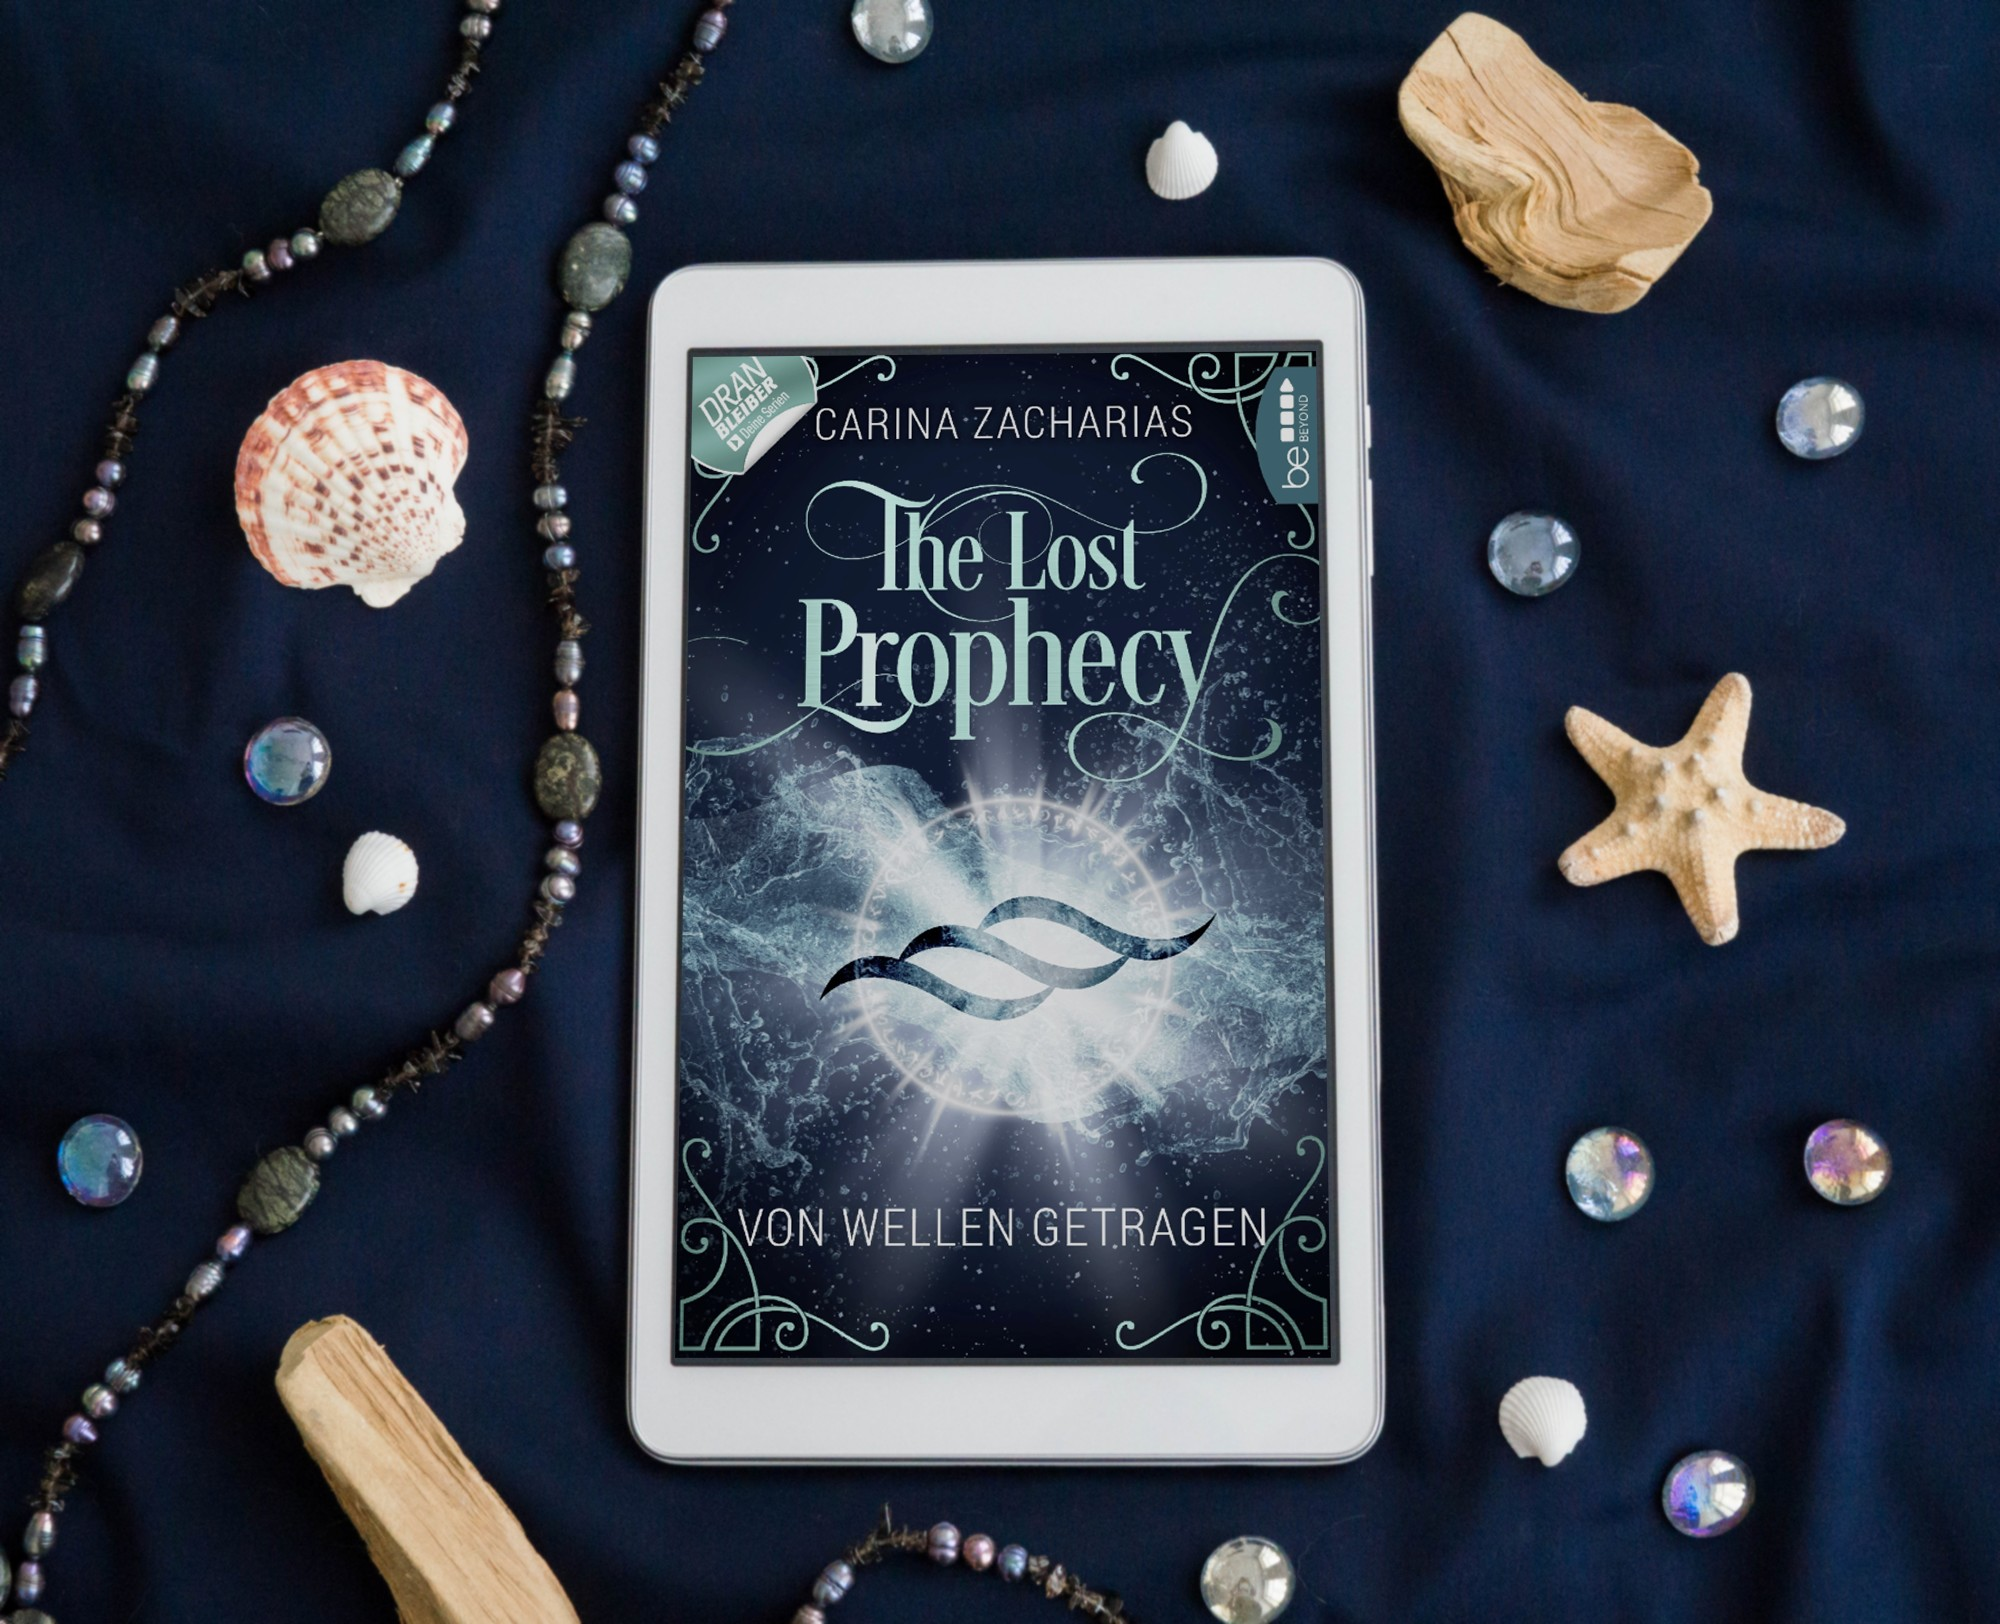 The Lost Prophecy: Von Wellen getragen – Carina Zacharias graphic